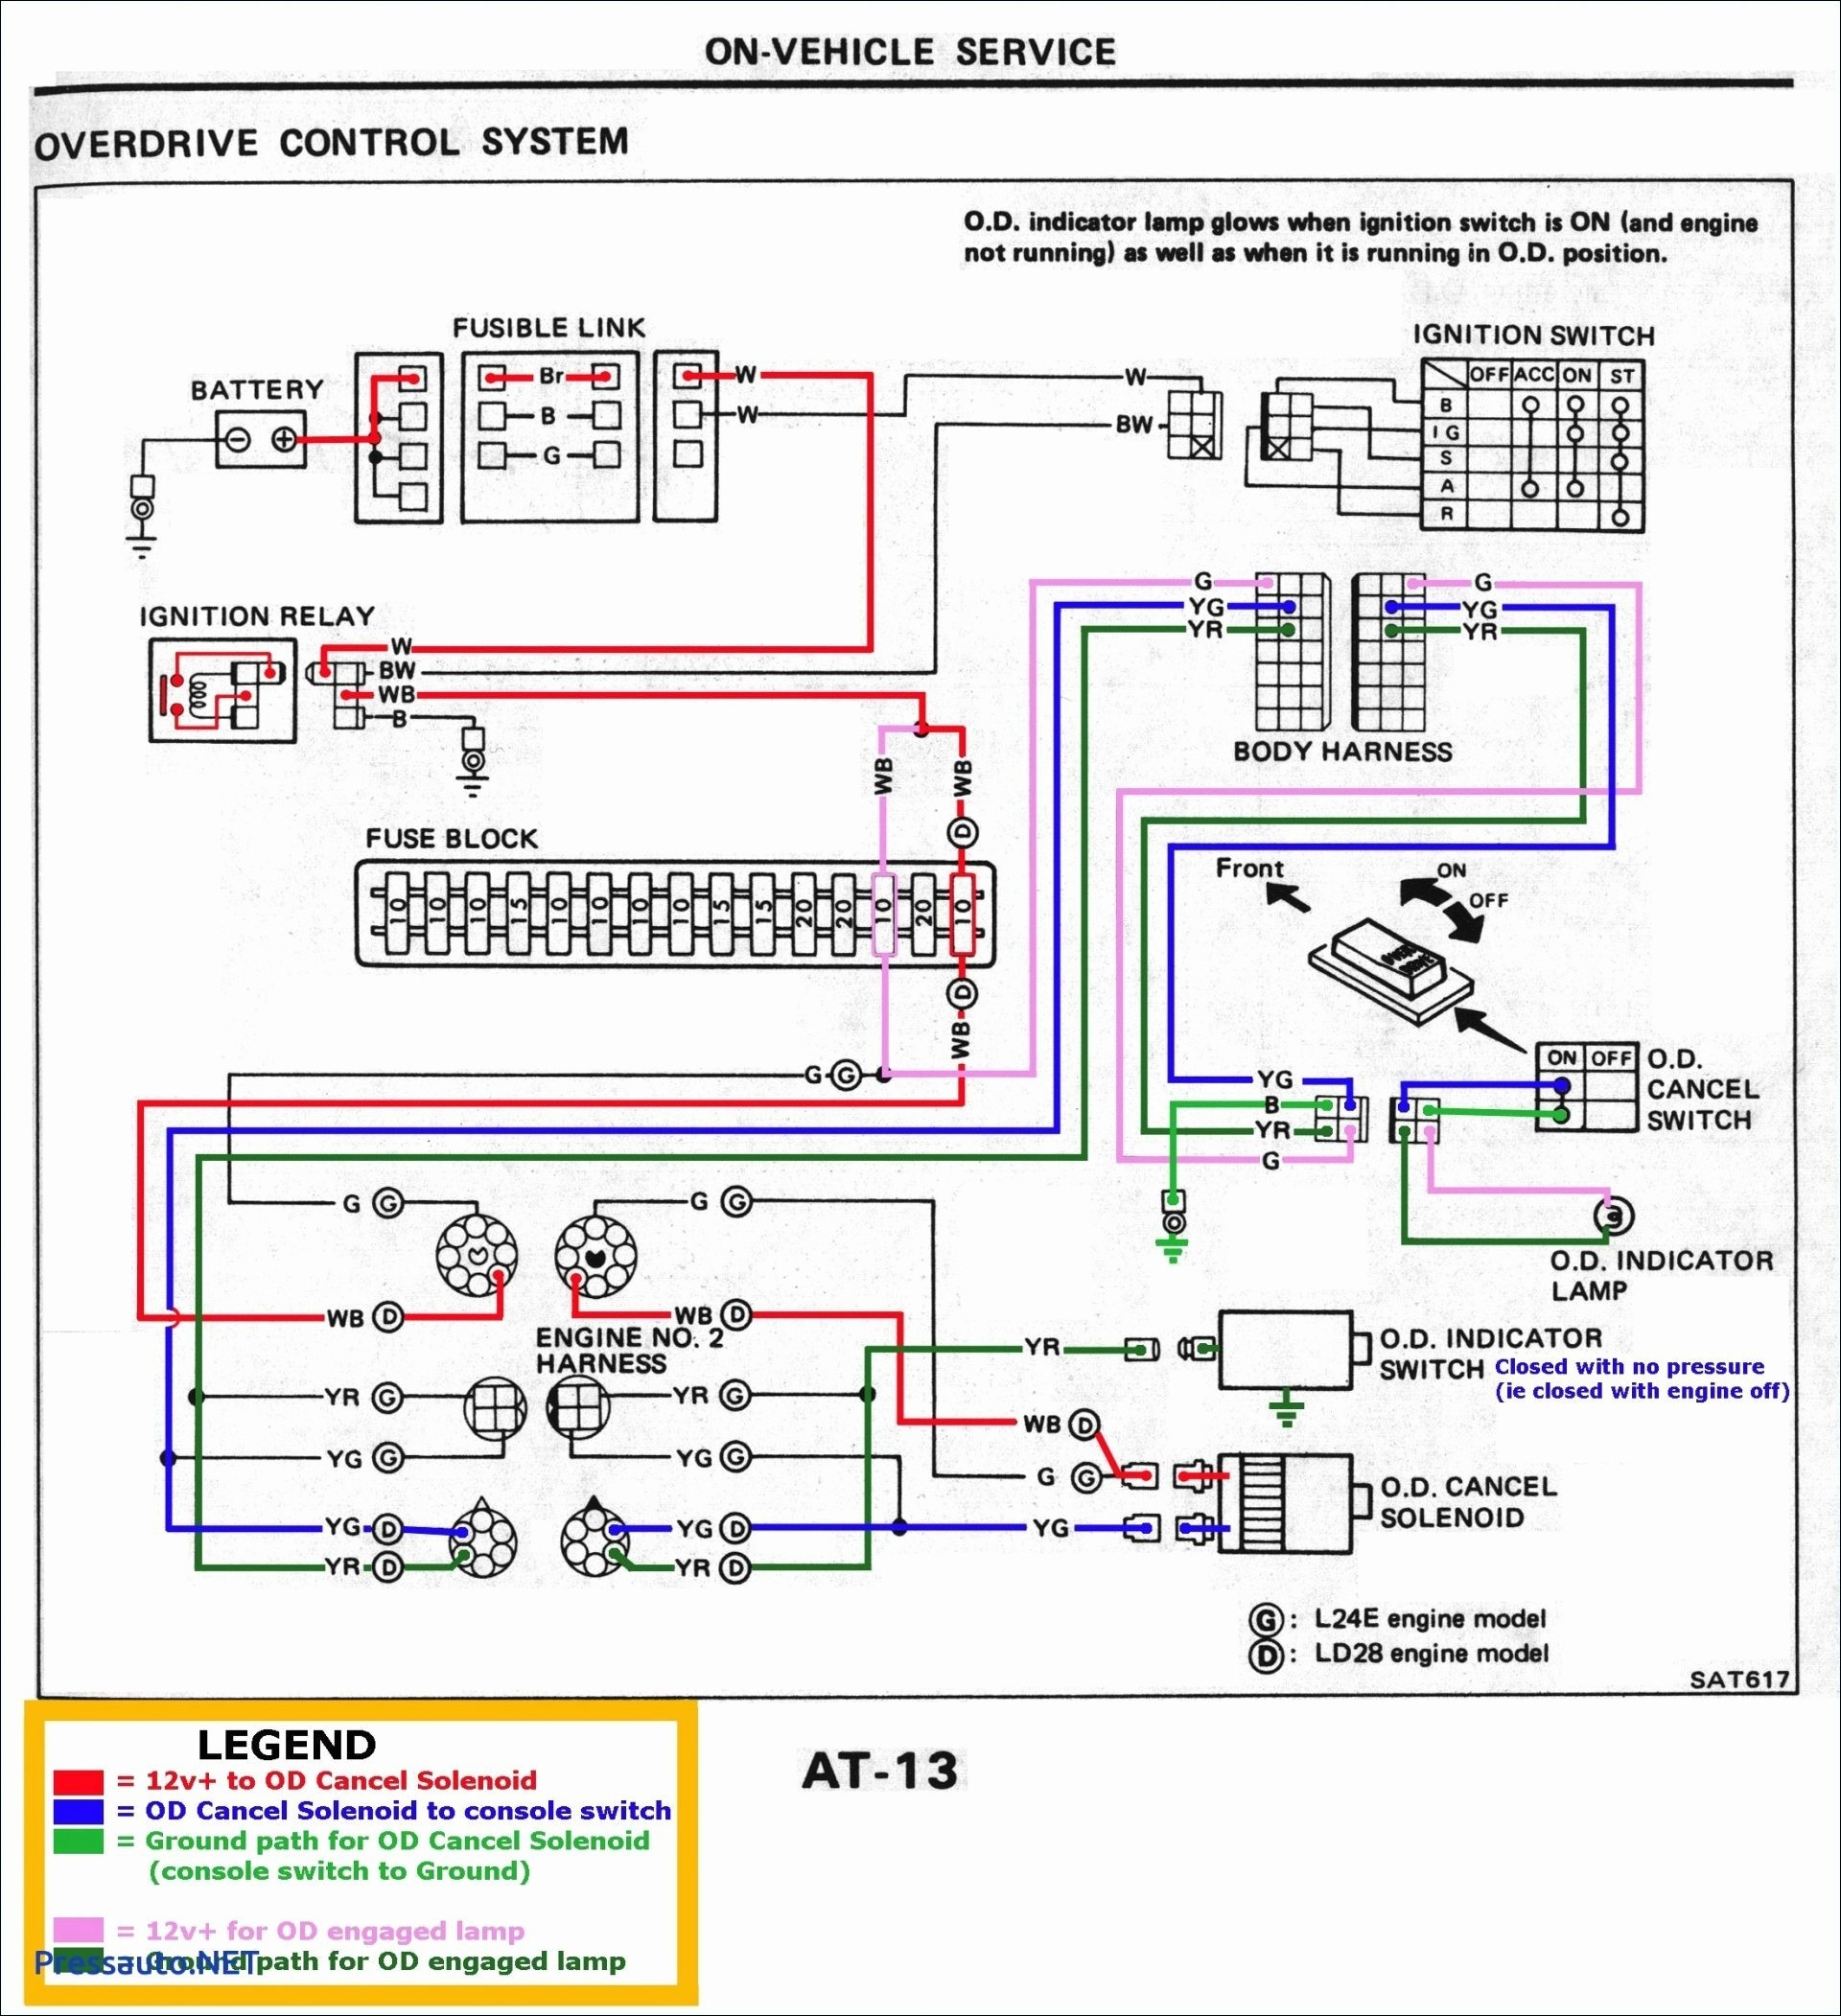 3 Position Selector Switch Wiring Diagram Wiring Diagram 5 Way Switch Wiring Diagram Light Inspirational Way Of 3 Position Selector Switch Wiring Diagram